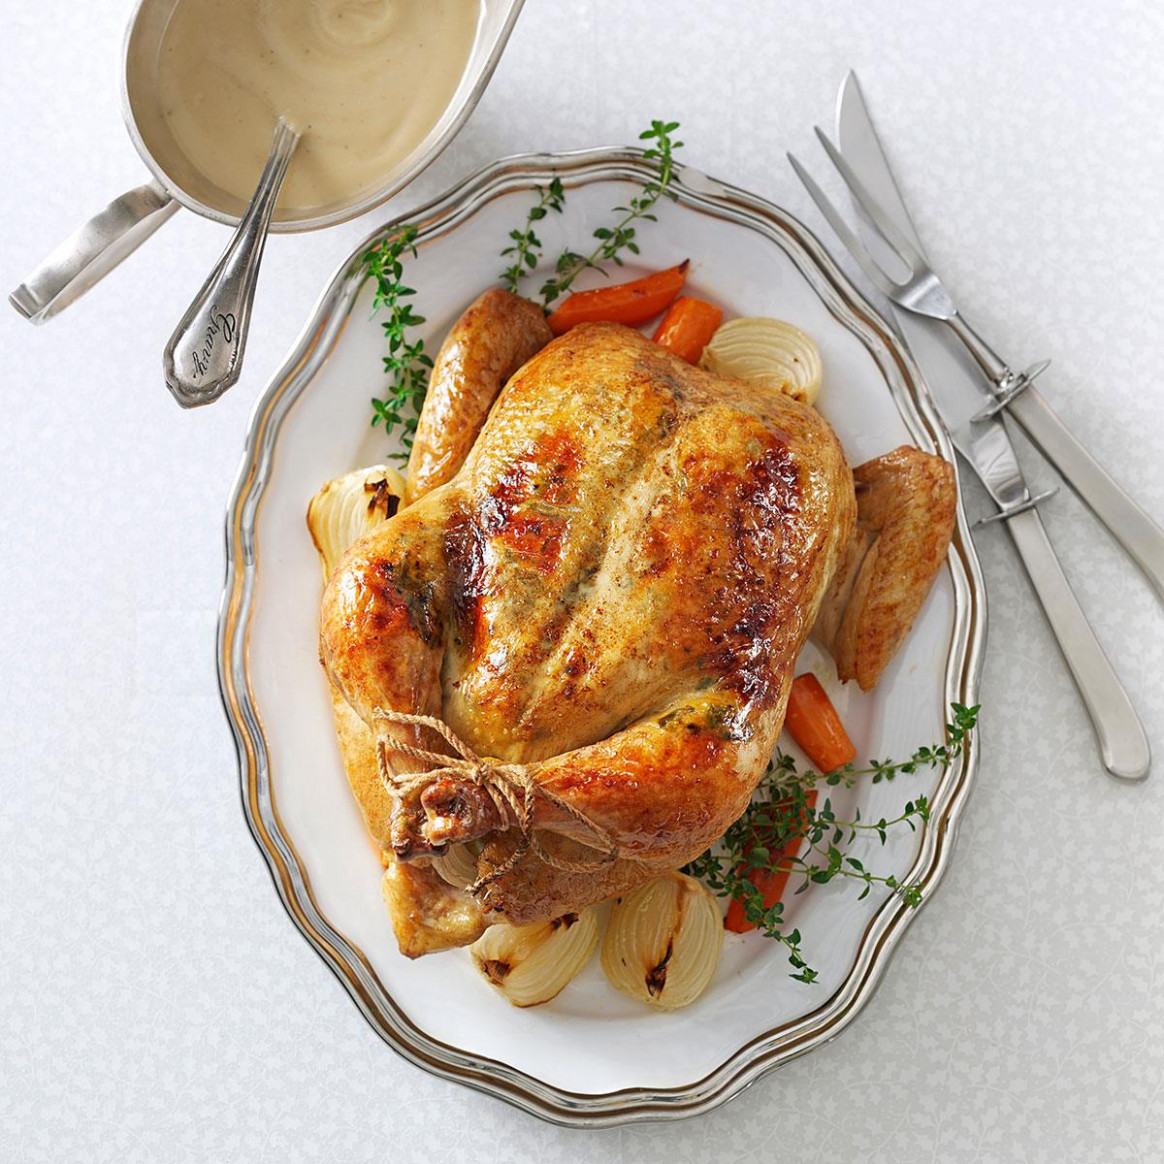 Rosemary-Orange Roasted Chicken Recipe | Taste of Home - recipes in chicken